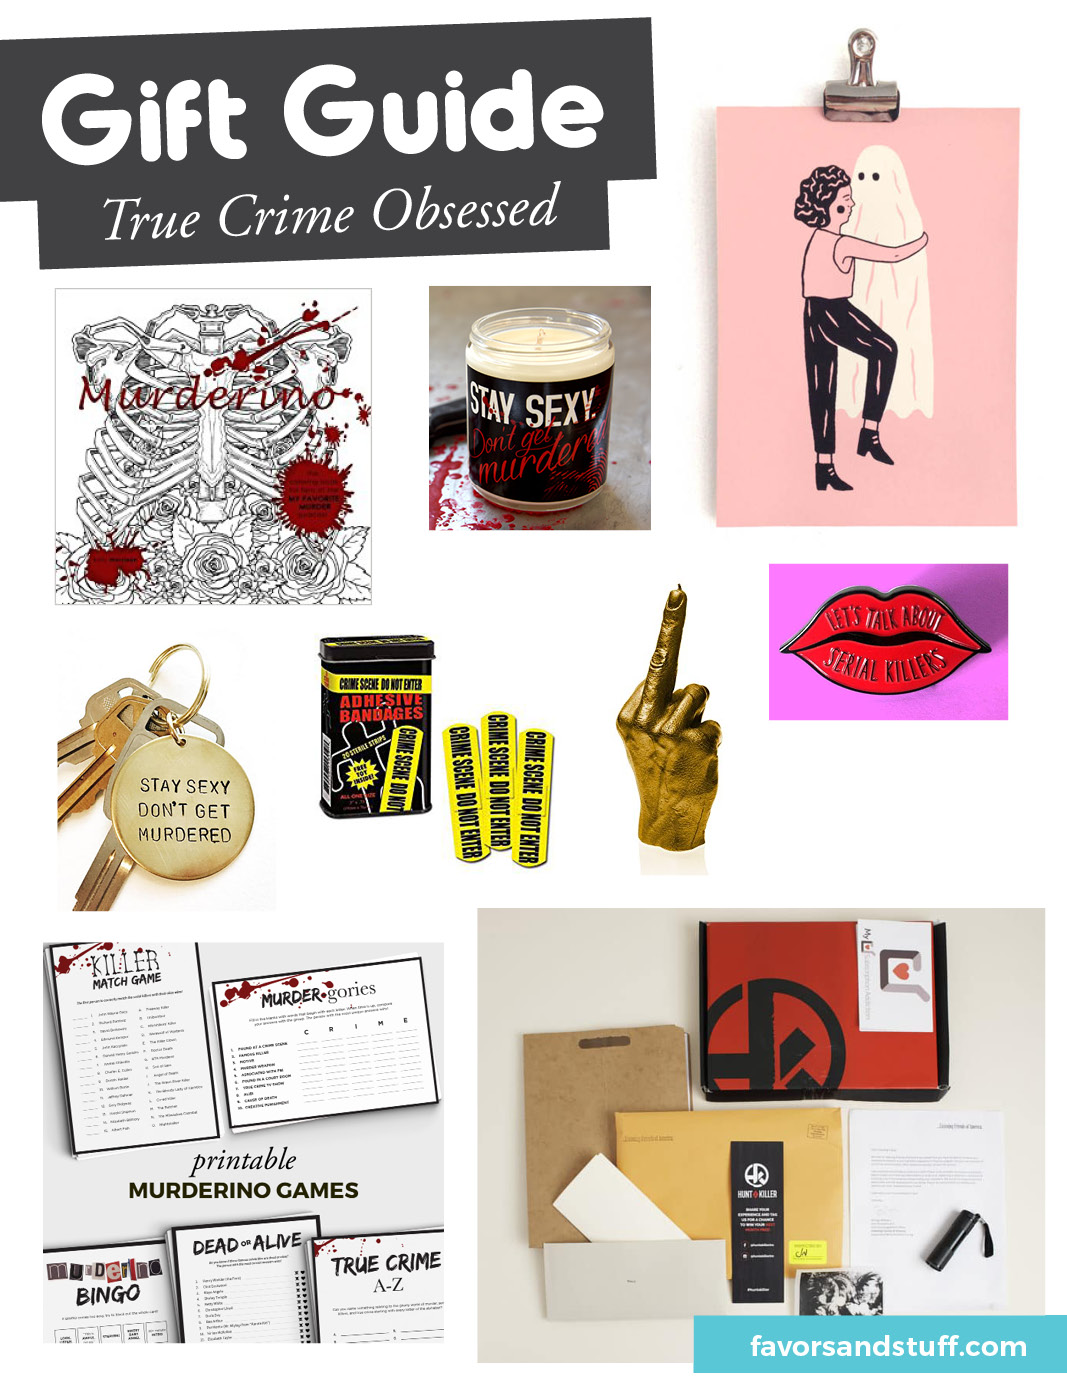 9 Gift Ideas for True Crime Lovers